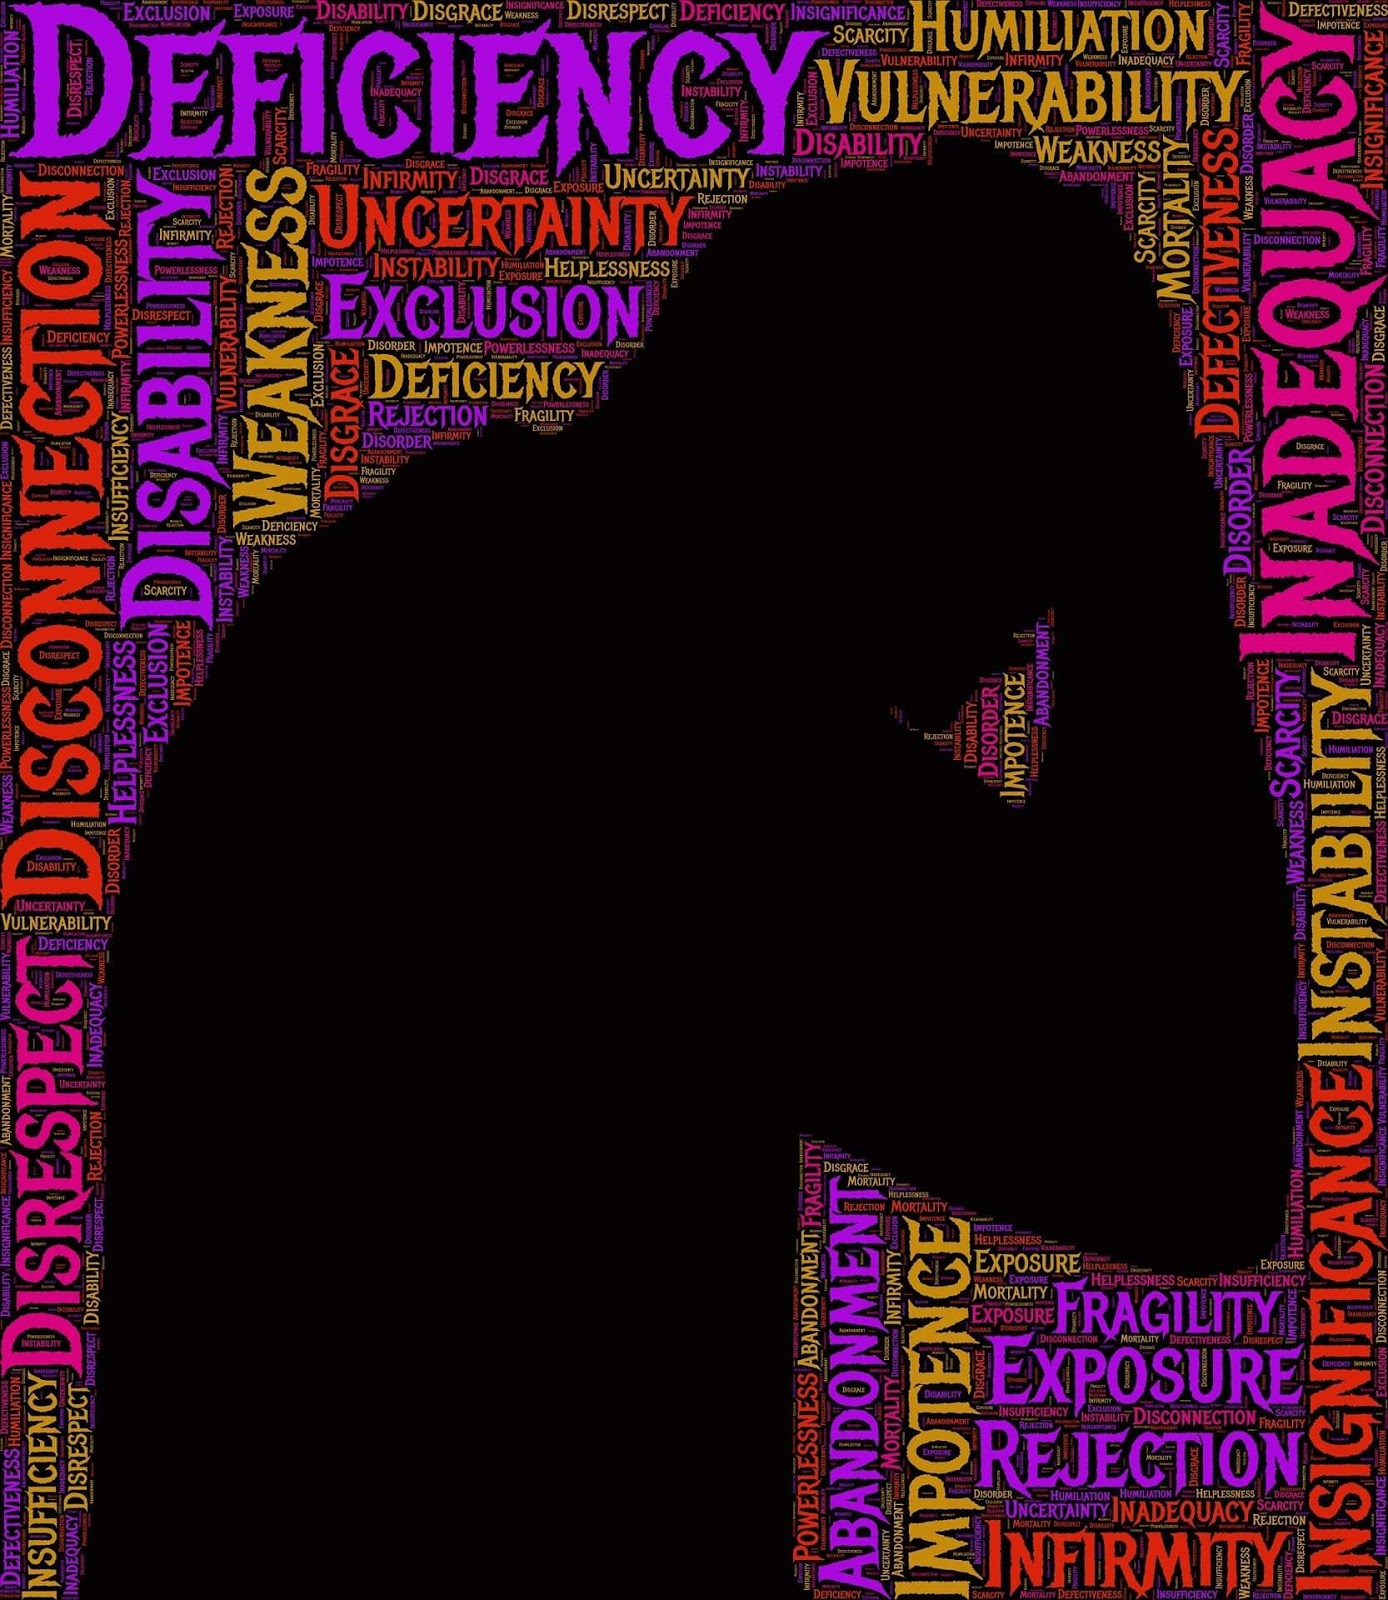 Emotional Wellness Problem Symptoms, Causes And Effects